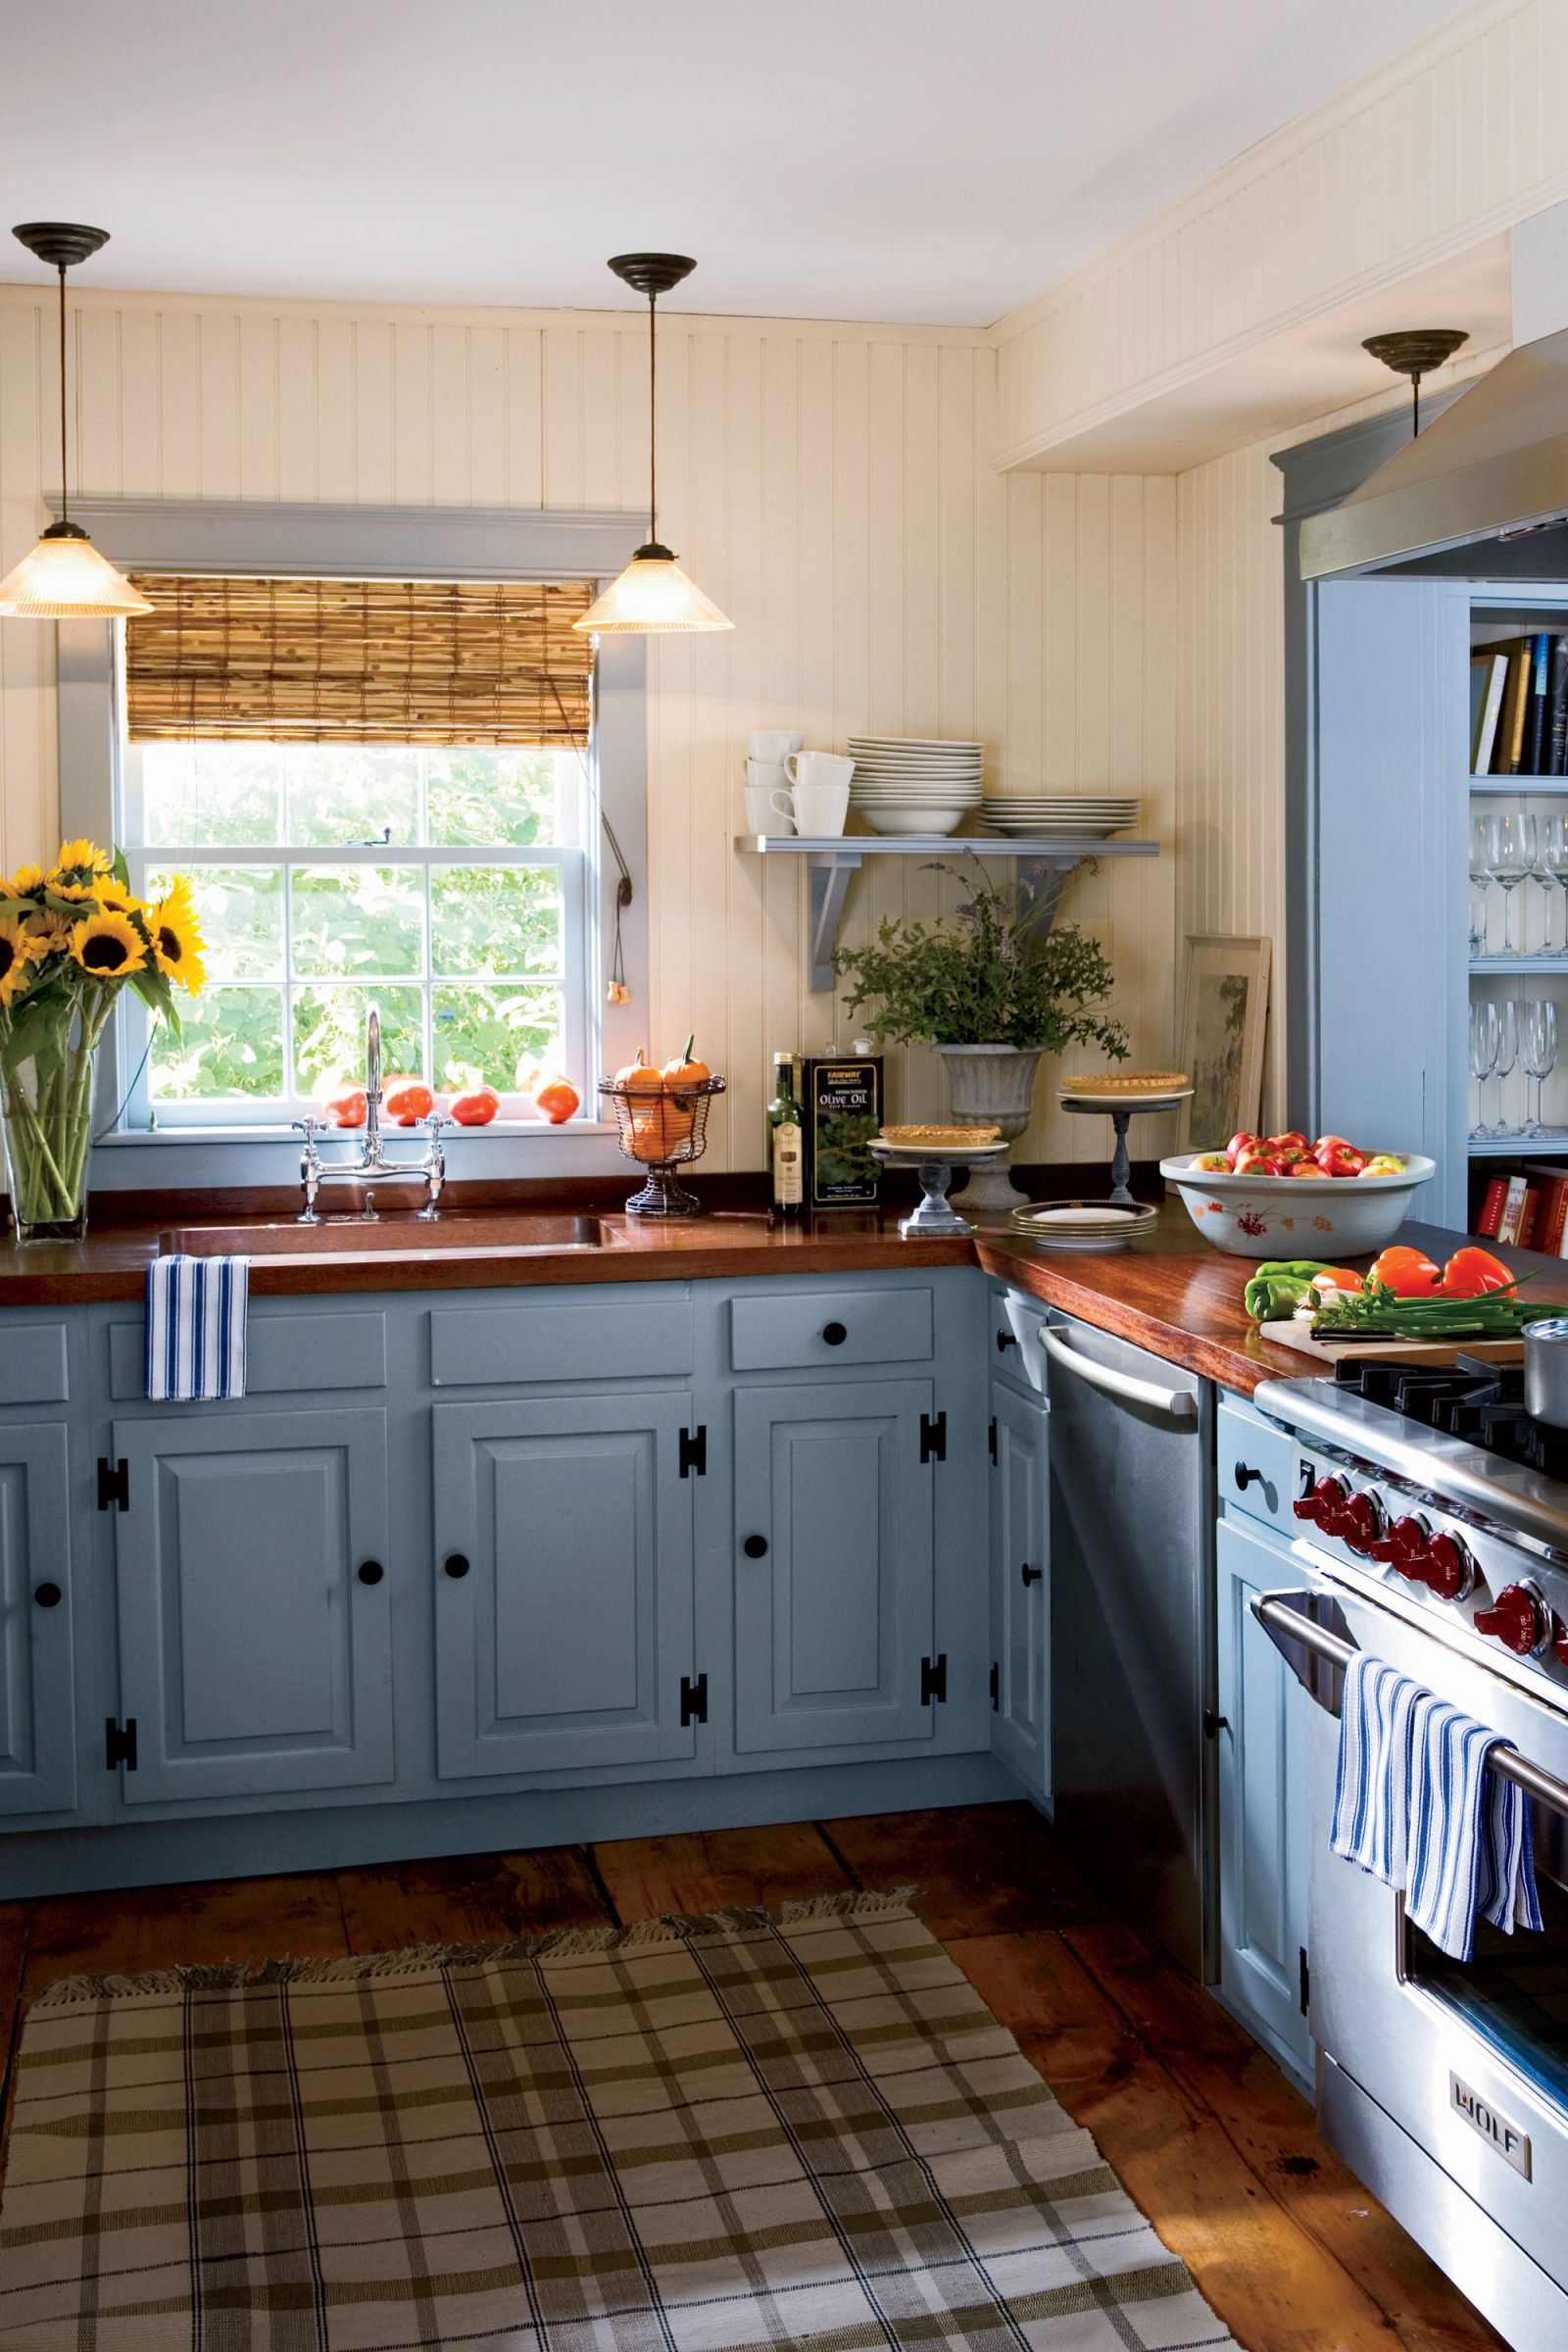 26 Paint Colors That Will Transform Your Kitchen Country Kitchen Colors Country Kitchen Designs Country Kitchen